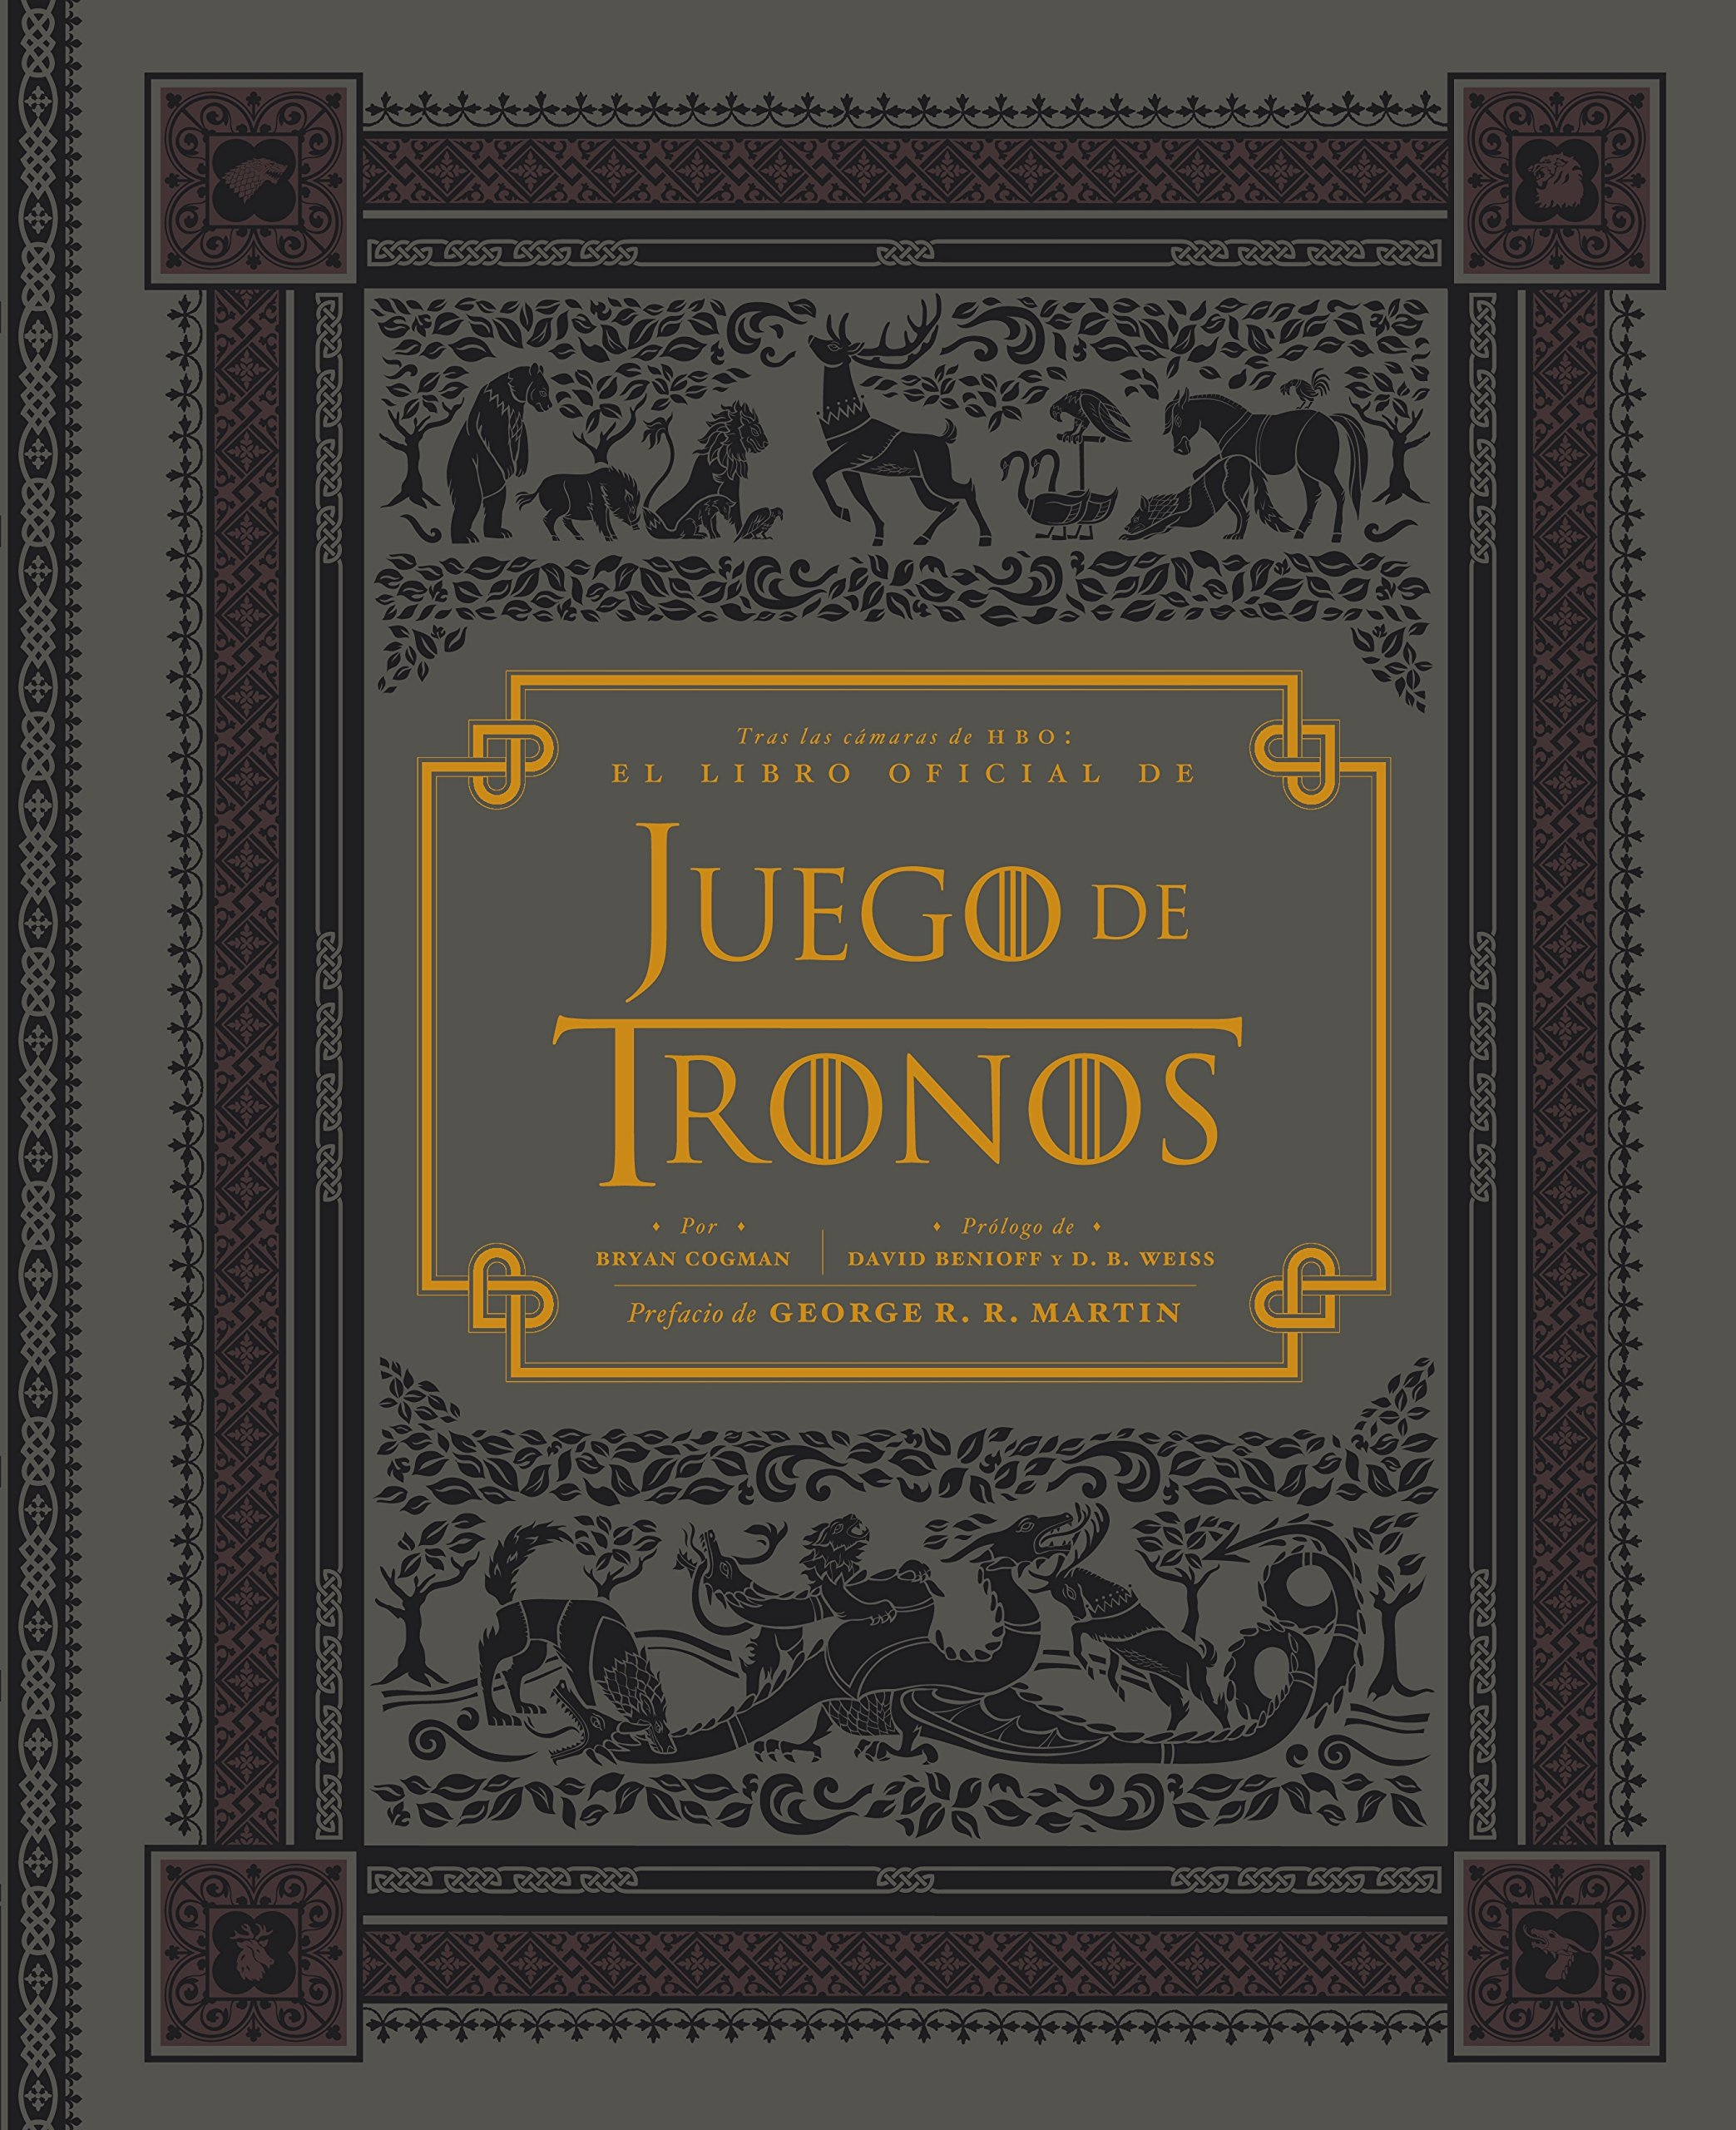 Juego tronos Game Thrones Spanish product image